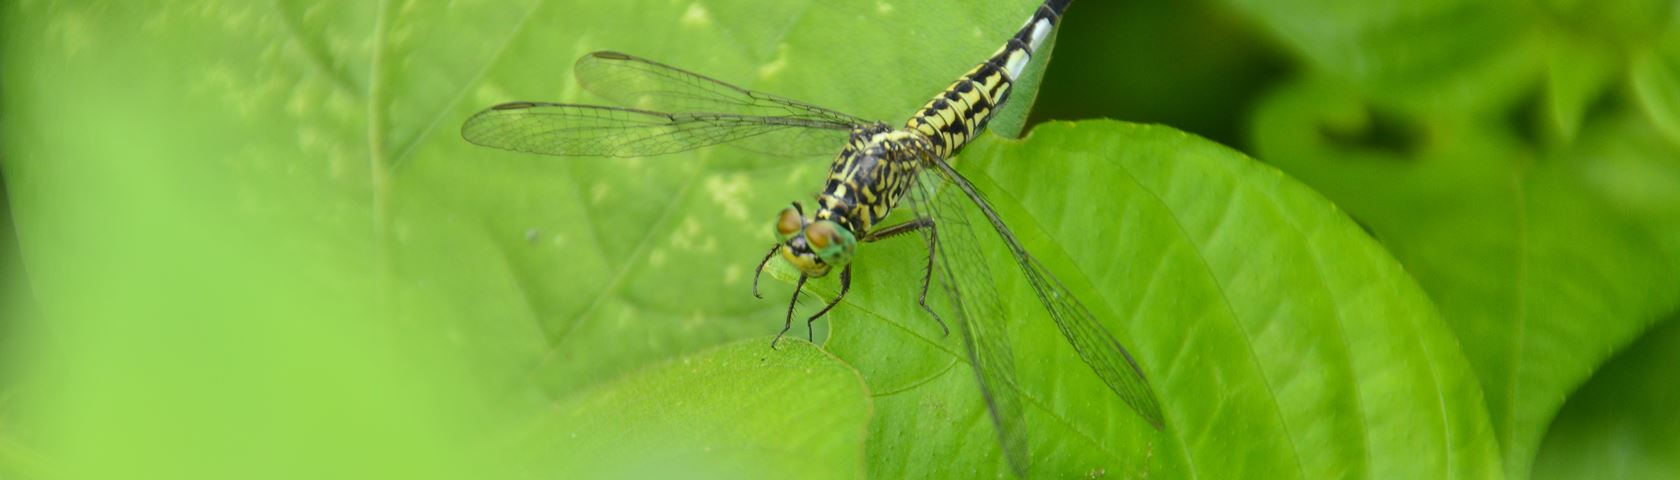 Dragonfly on Green Leaves